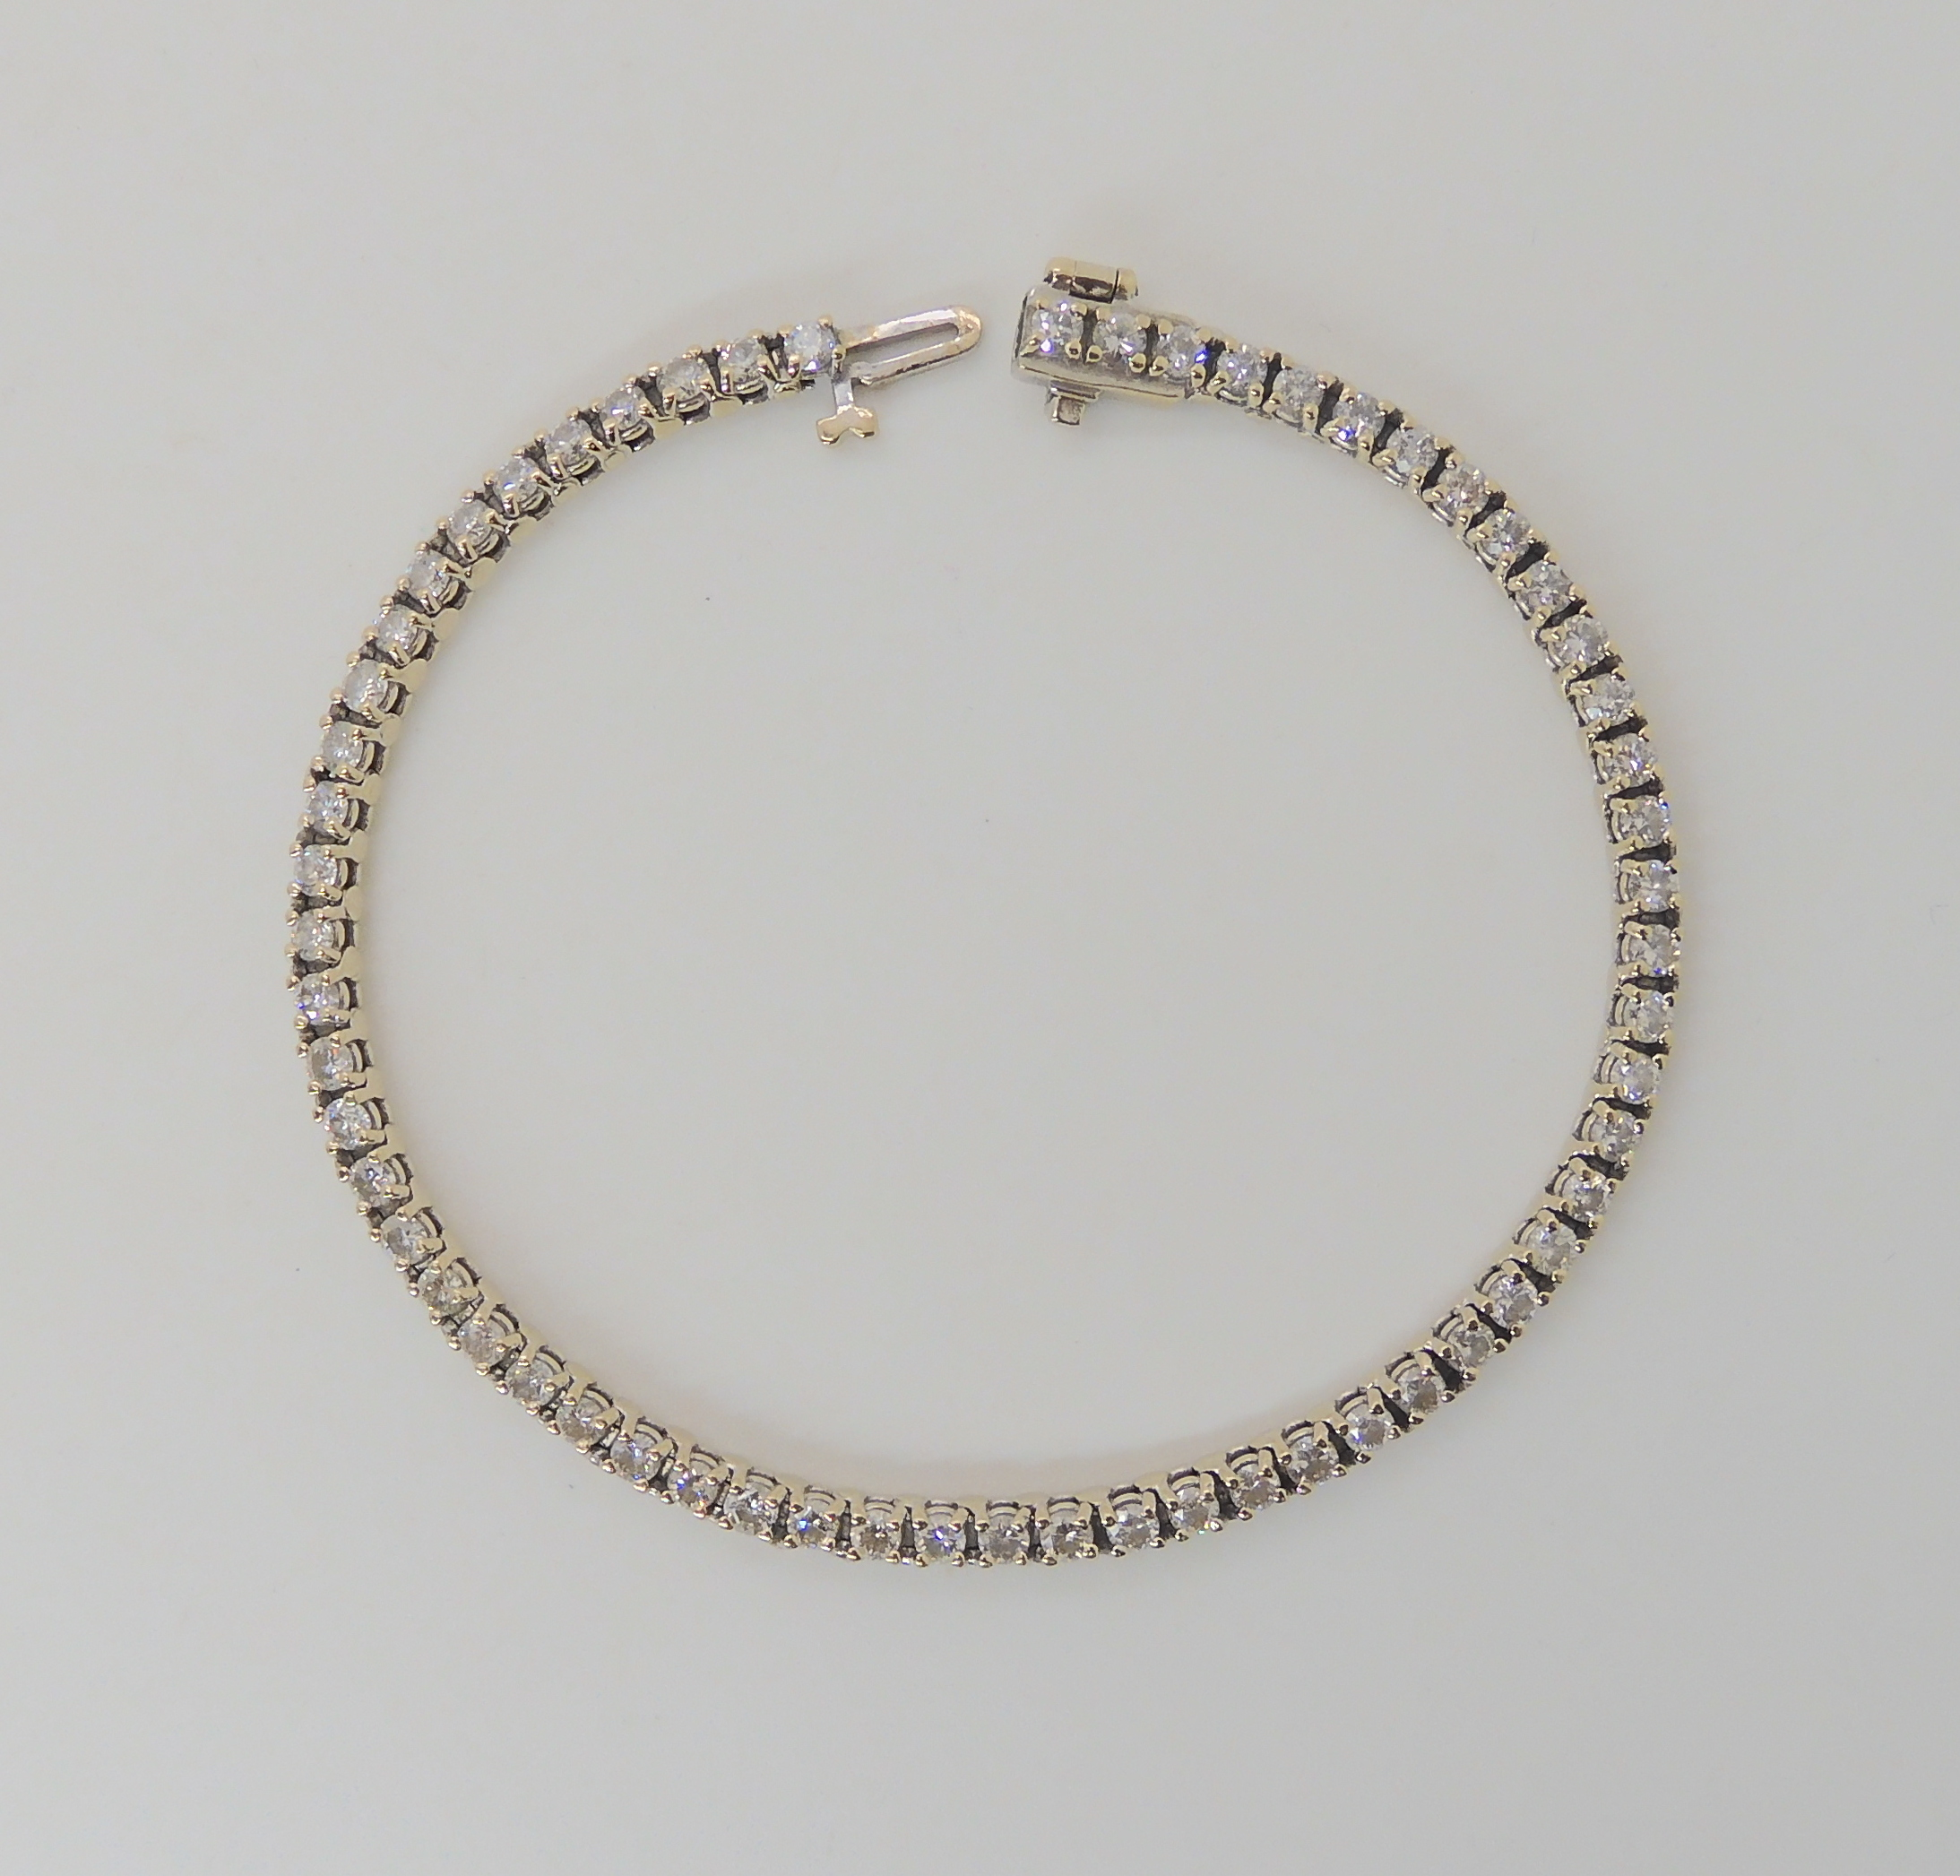 AN 18K WHITE GOLD DIAMOND LINE BRACELET set with estimated approx 2.7cts of brilliant cut